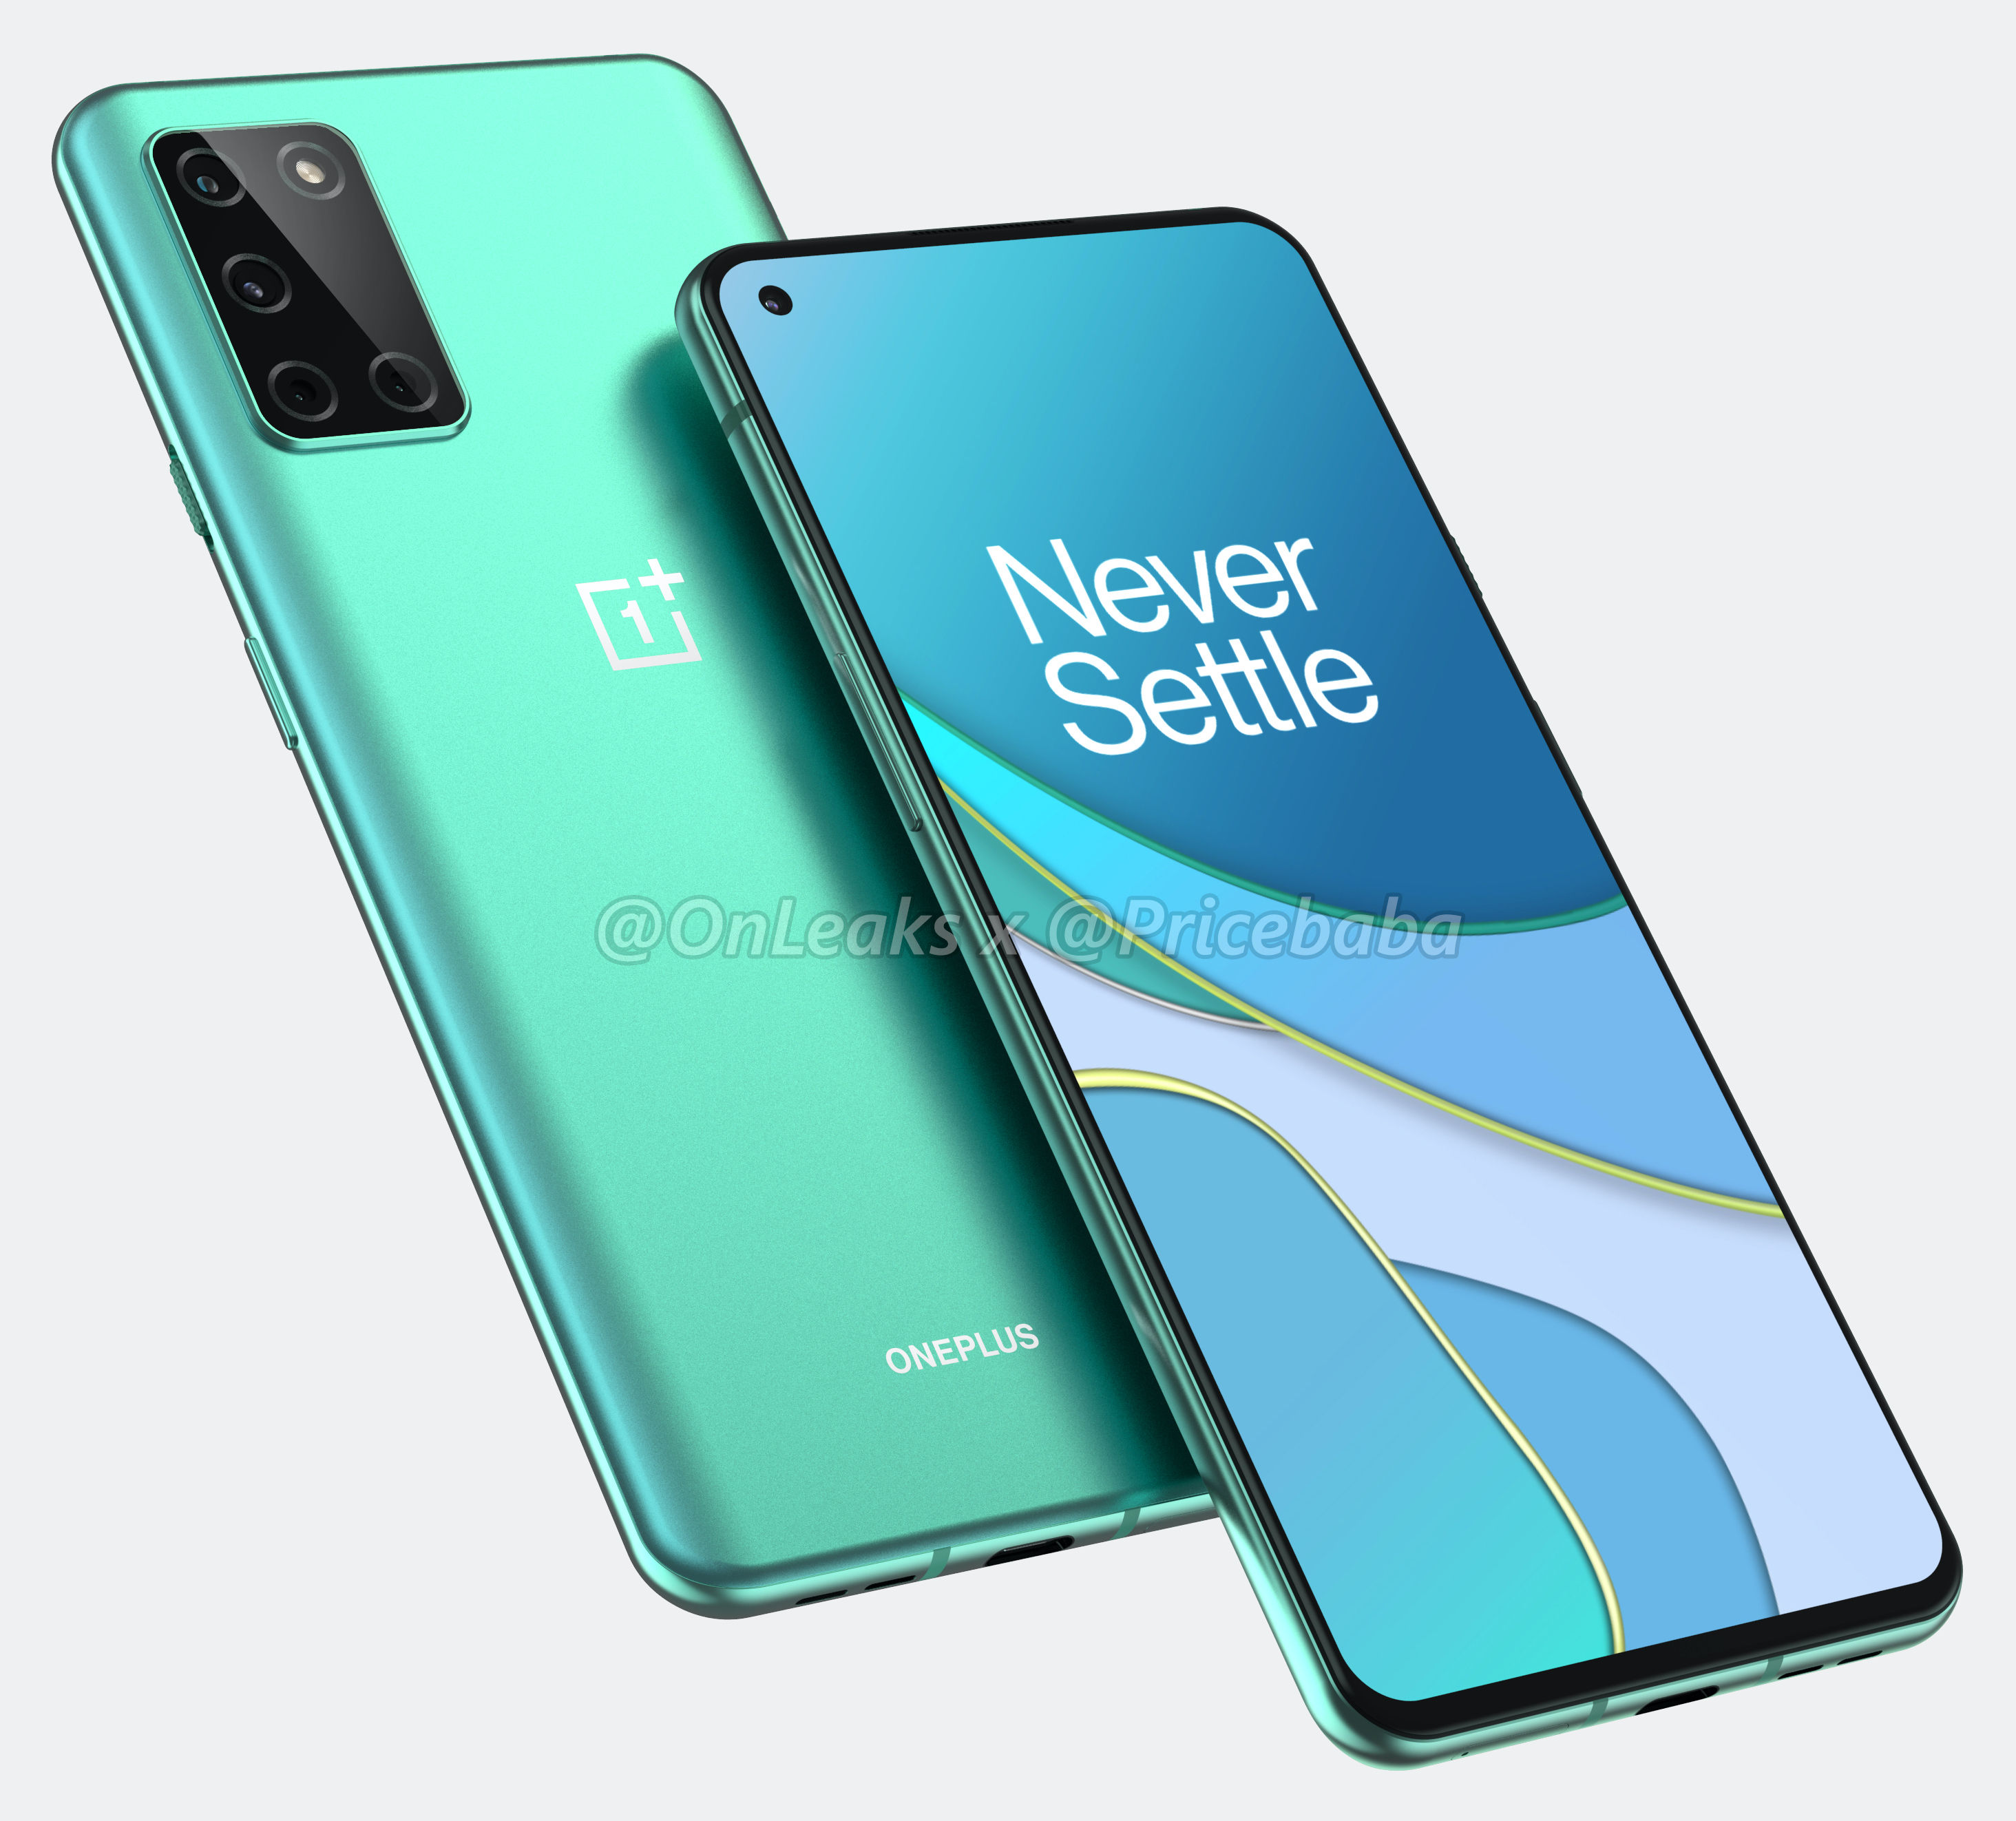 Ecco OnePlus 8T in mostra da tutti i lati e (quasi) tutte le sue specifiche appena trapelate (video e foto)